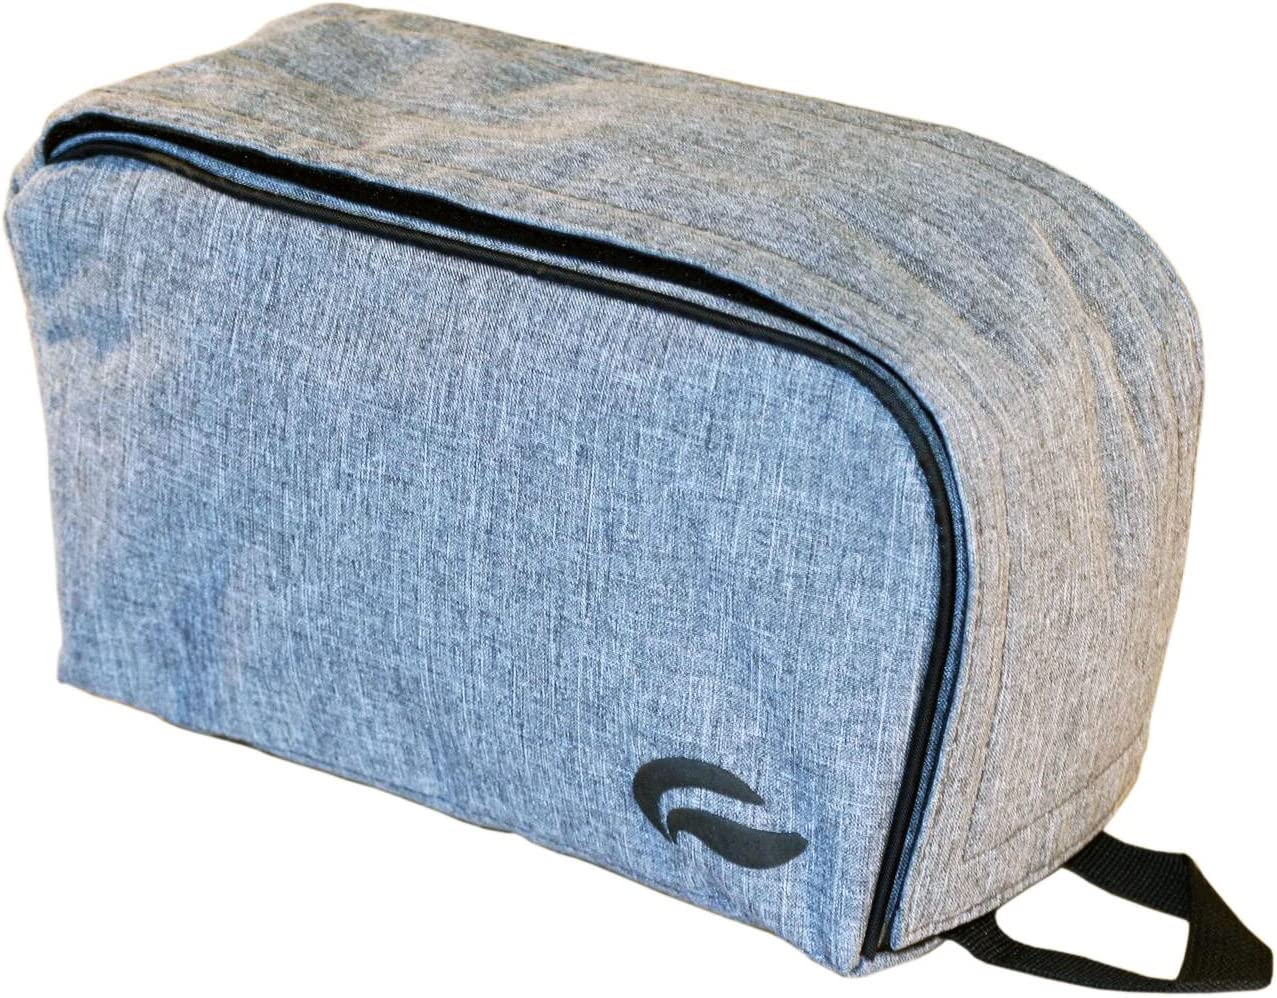 Skunk Lifestyle Edition Travel Pack Smell Proof 6 Case Gray US Patent Number D816,984 S